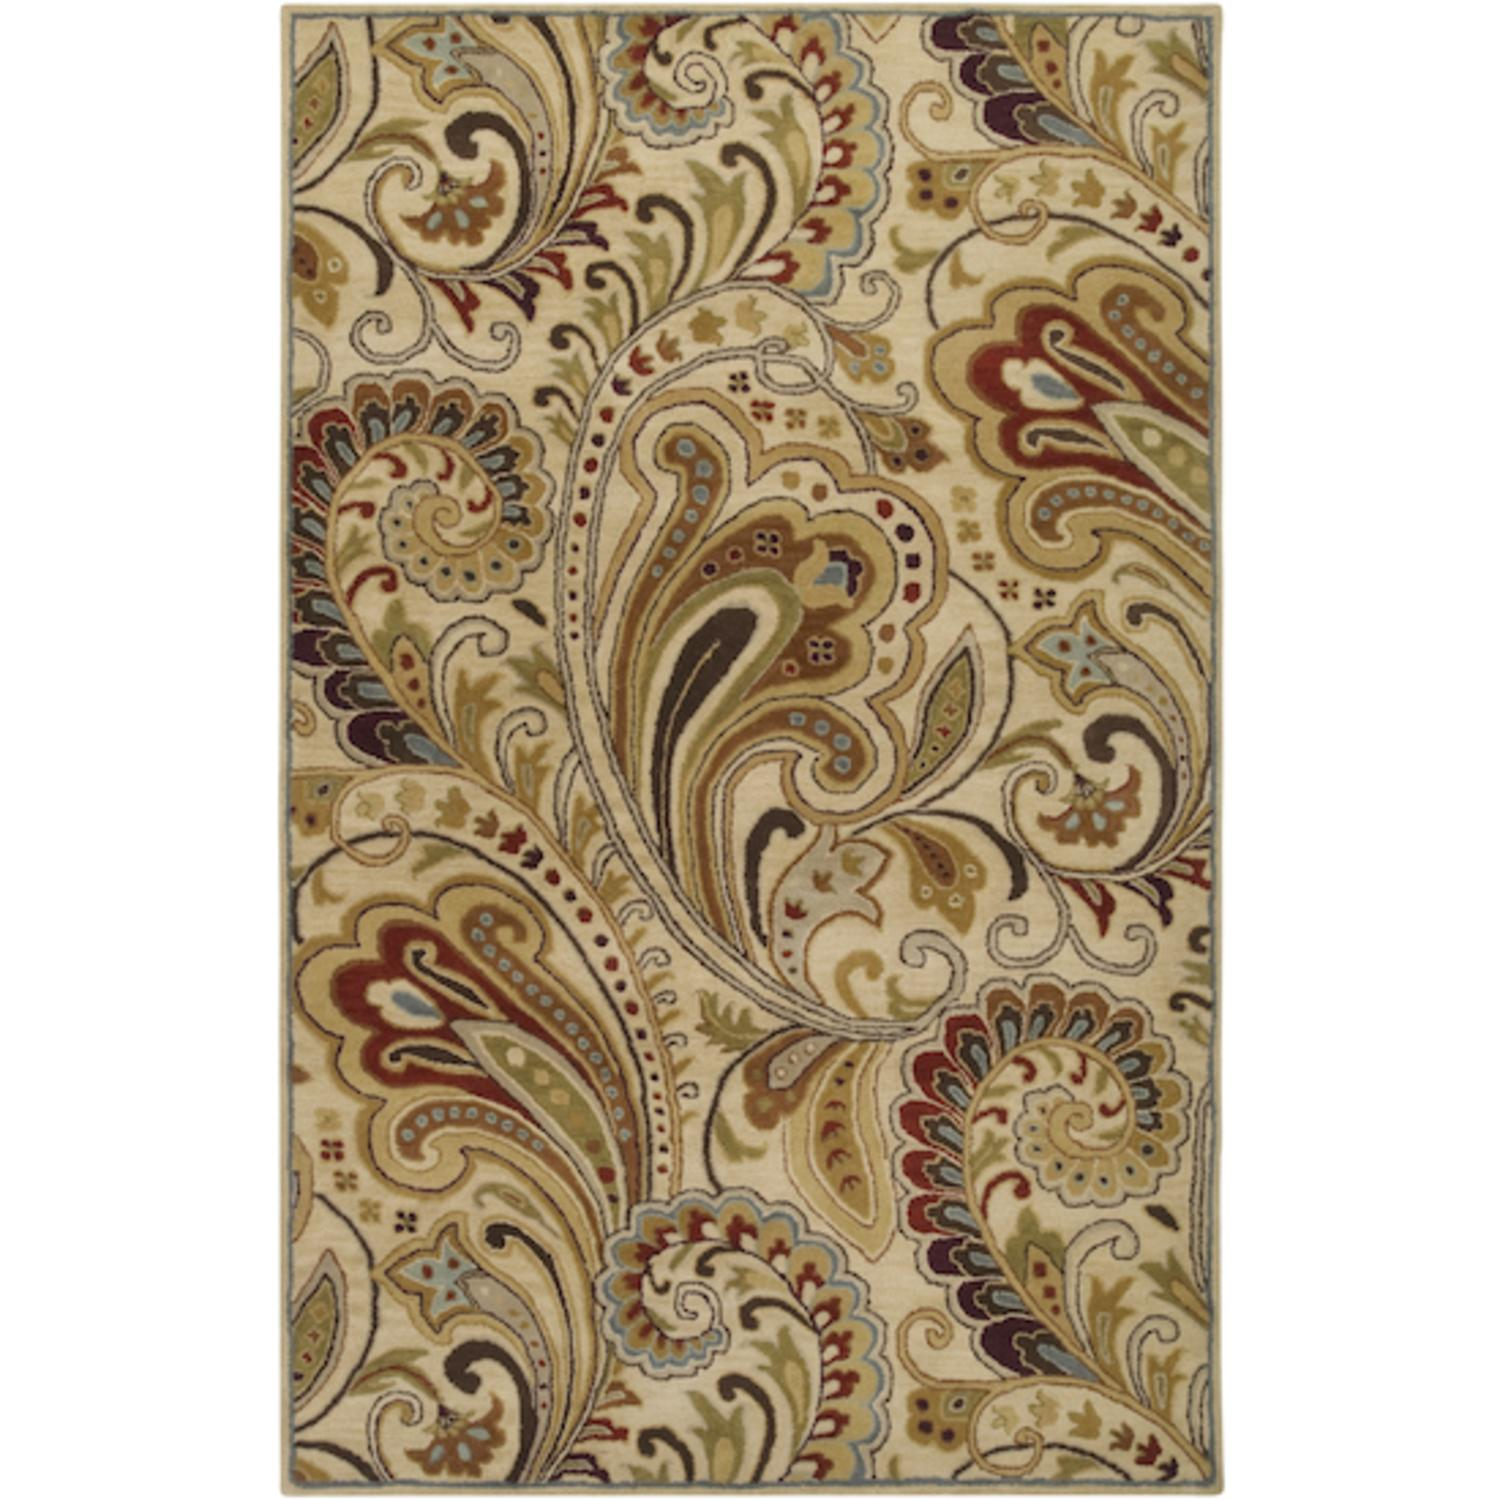 5' x 8' Kangaroo Paw Golden Brown and Raisin Red Wool Area Throw Rug